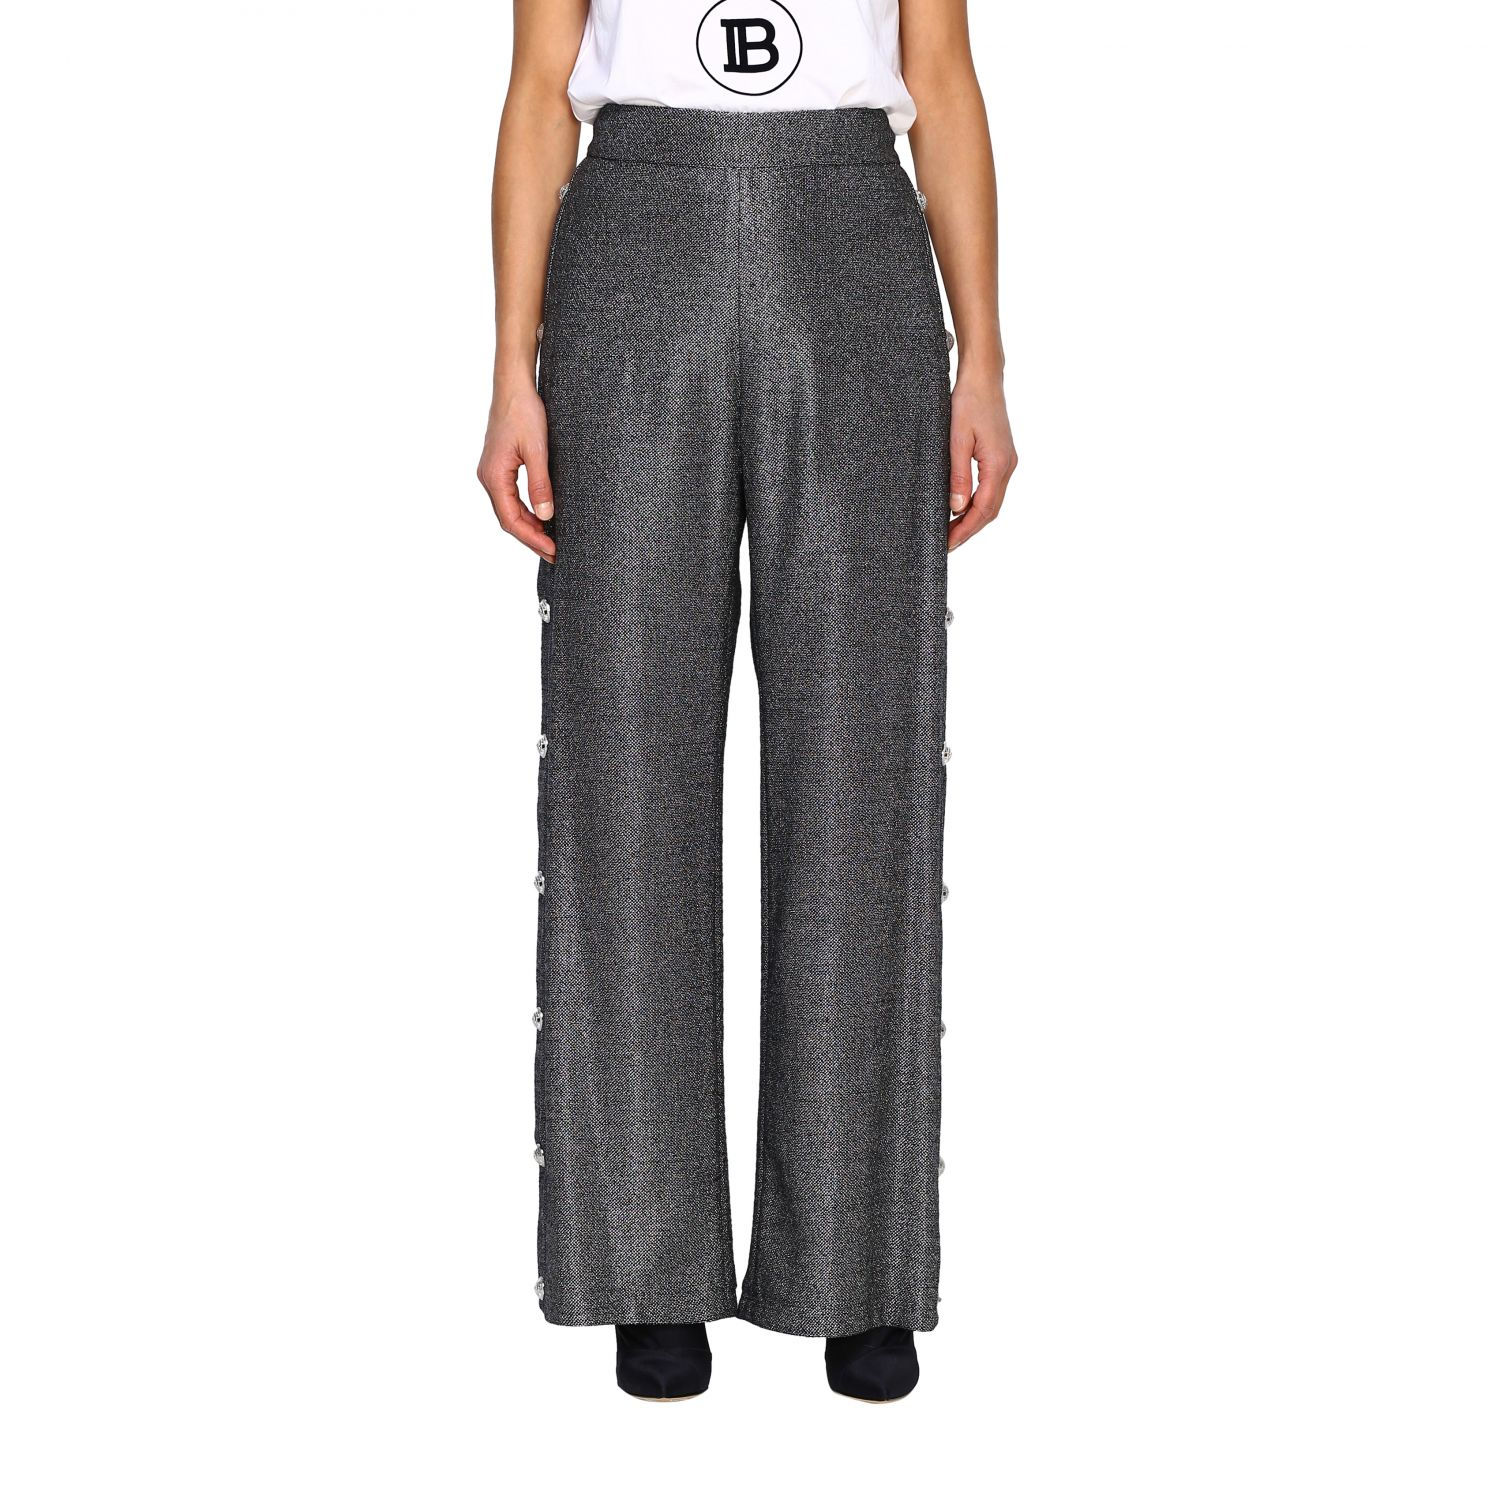 Trousers Balmain: Wide Balmain trousers in lurex knit with jewel buttons black 1